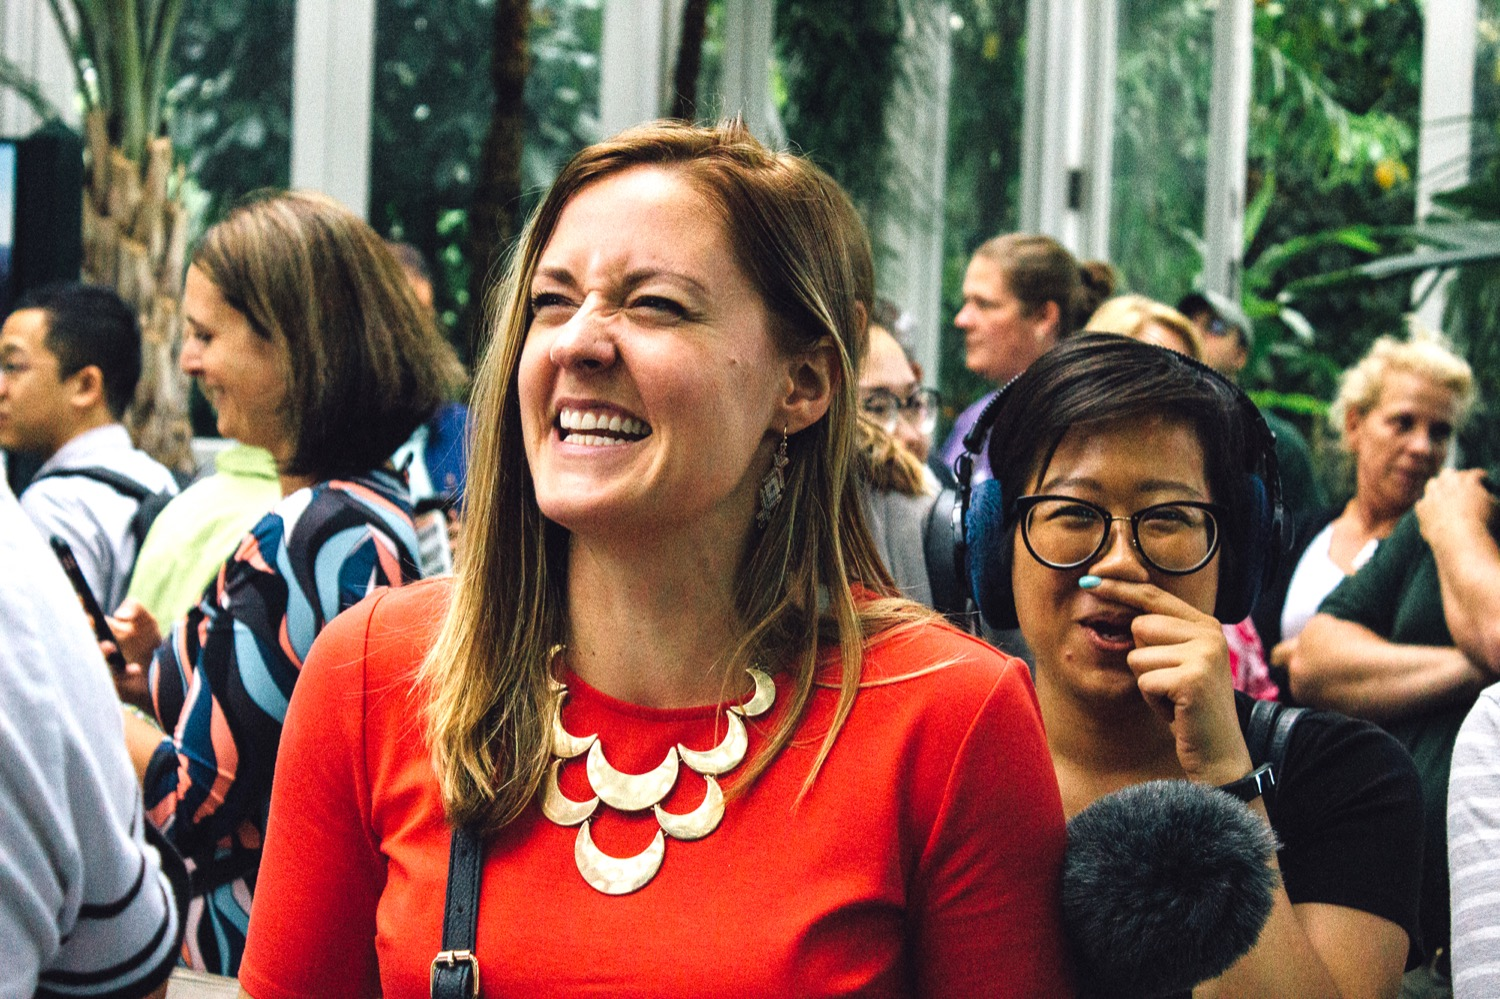 in a crowd of people, there are two women, one who's nose is wrinking and smiling, and the other, wearing headphones and carrying a microphone, is putting a finger under her nose